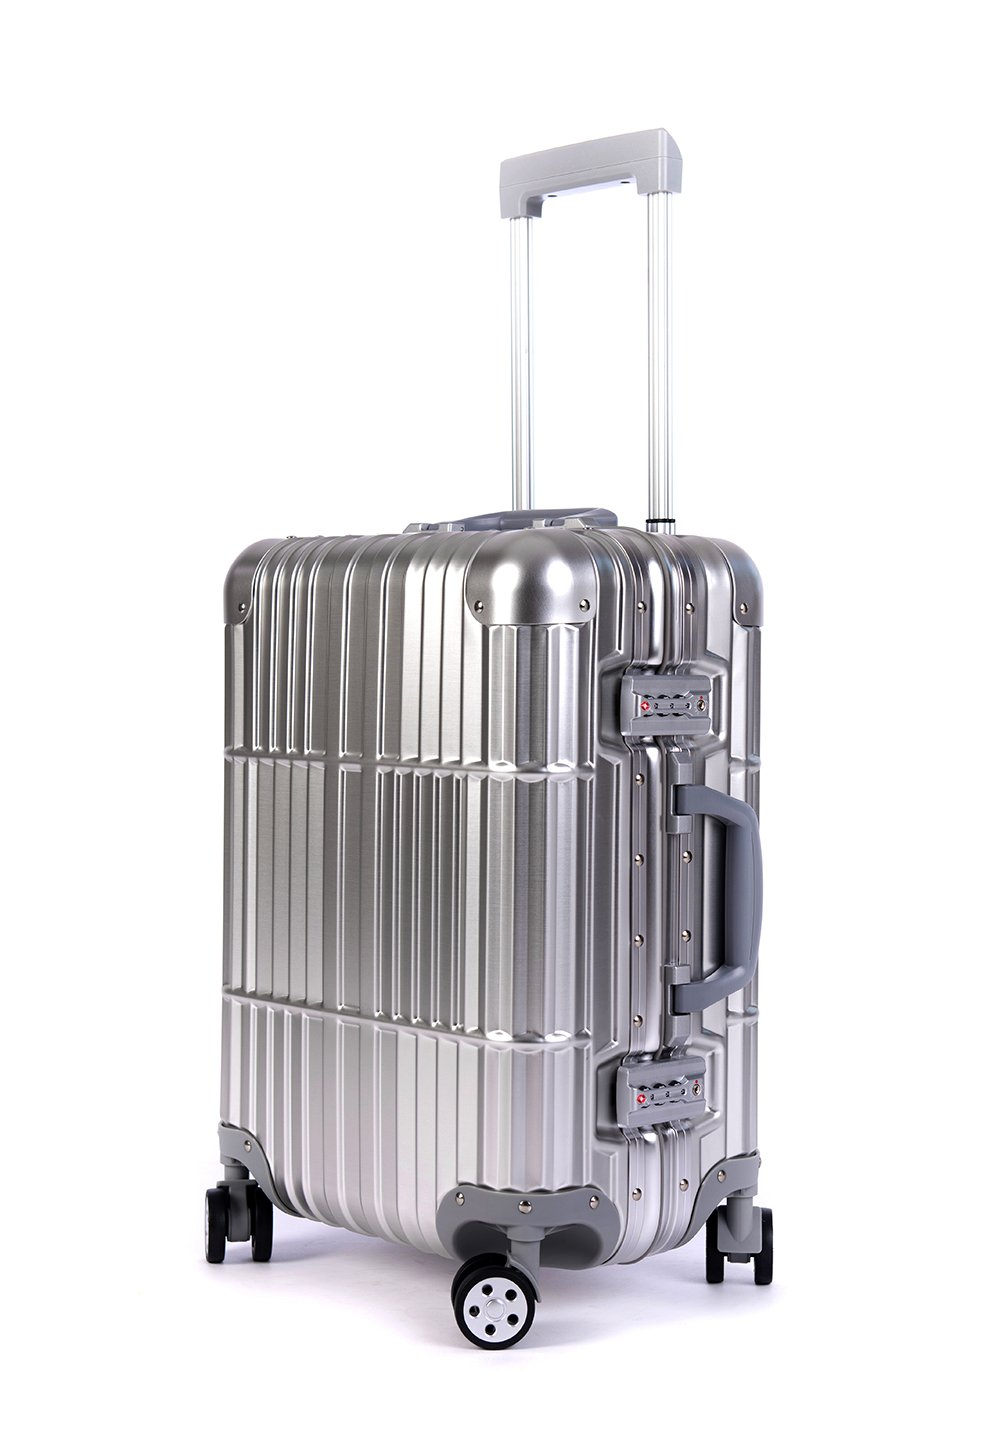 Cloud 9 - All Aluminum Luxury Hard Case Carry-On 20'' Durable with 360 Degree 4 Wheel Spinner TSA Approved (FULL ALUMINUM) by Newbee Fashion